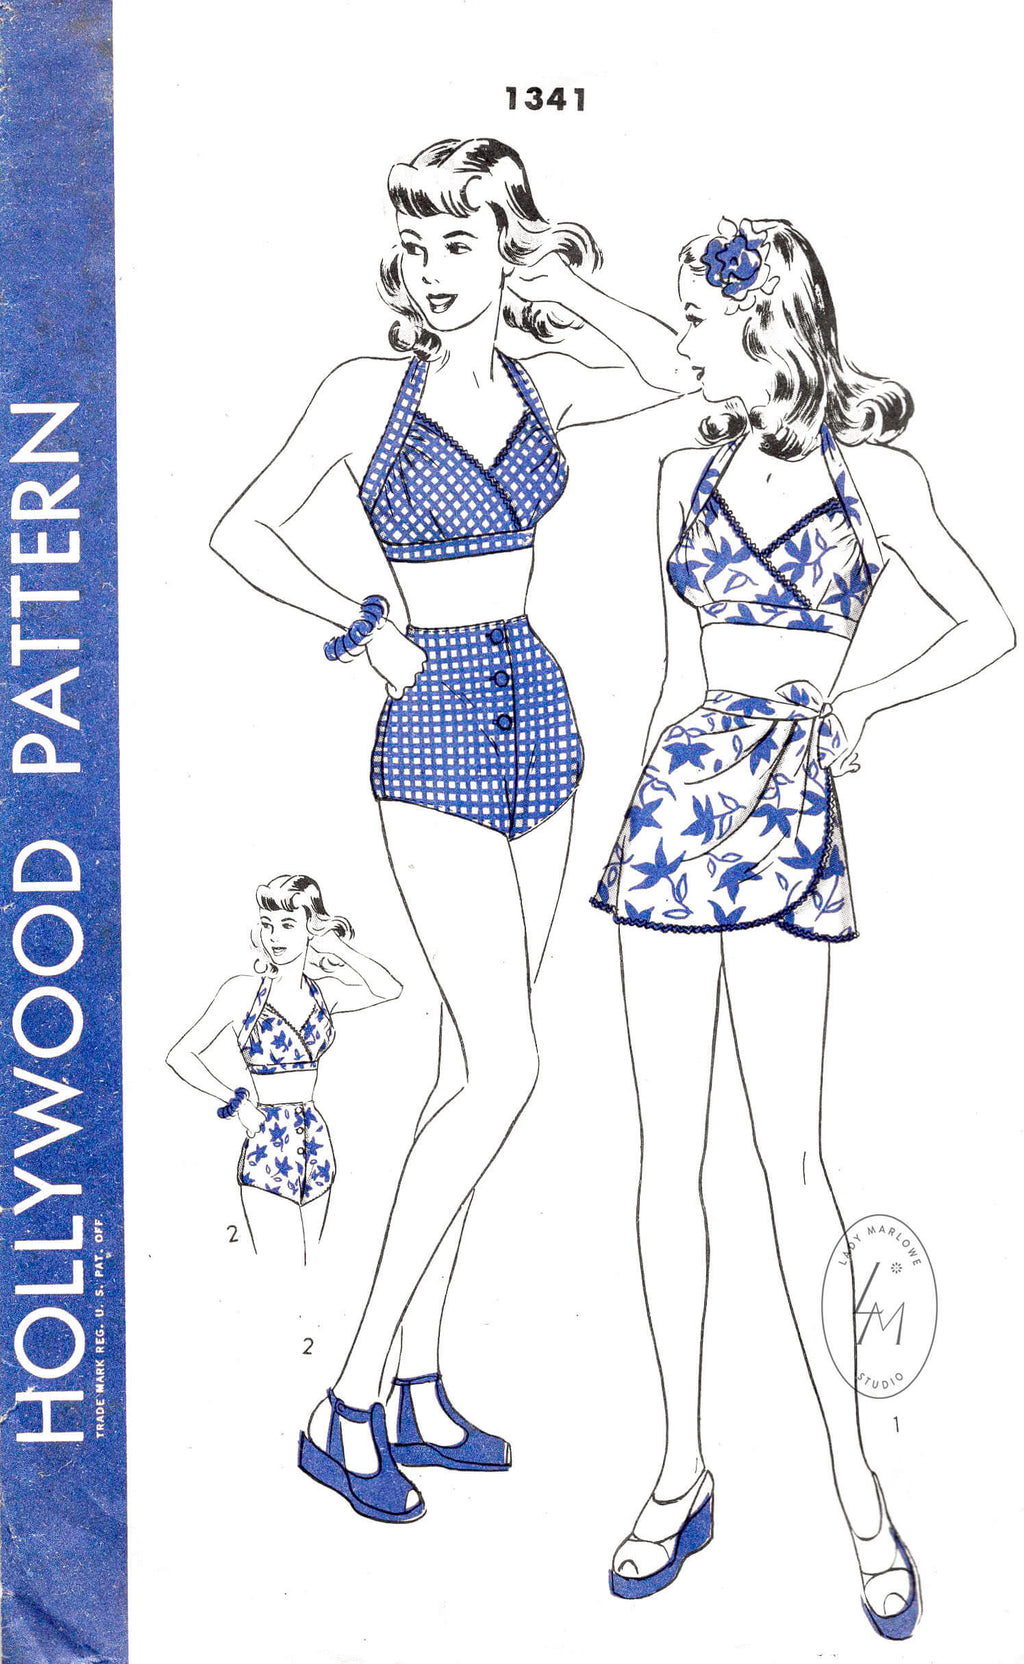 1940s 1946 Hollywood 1341 vintage bathing suit bikini high waist shorts & wrap skirt sewing pattern